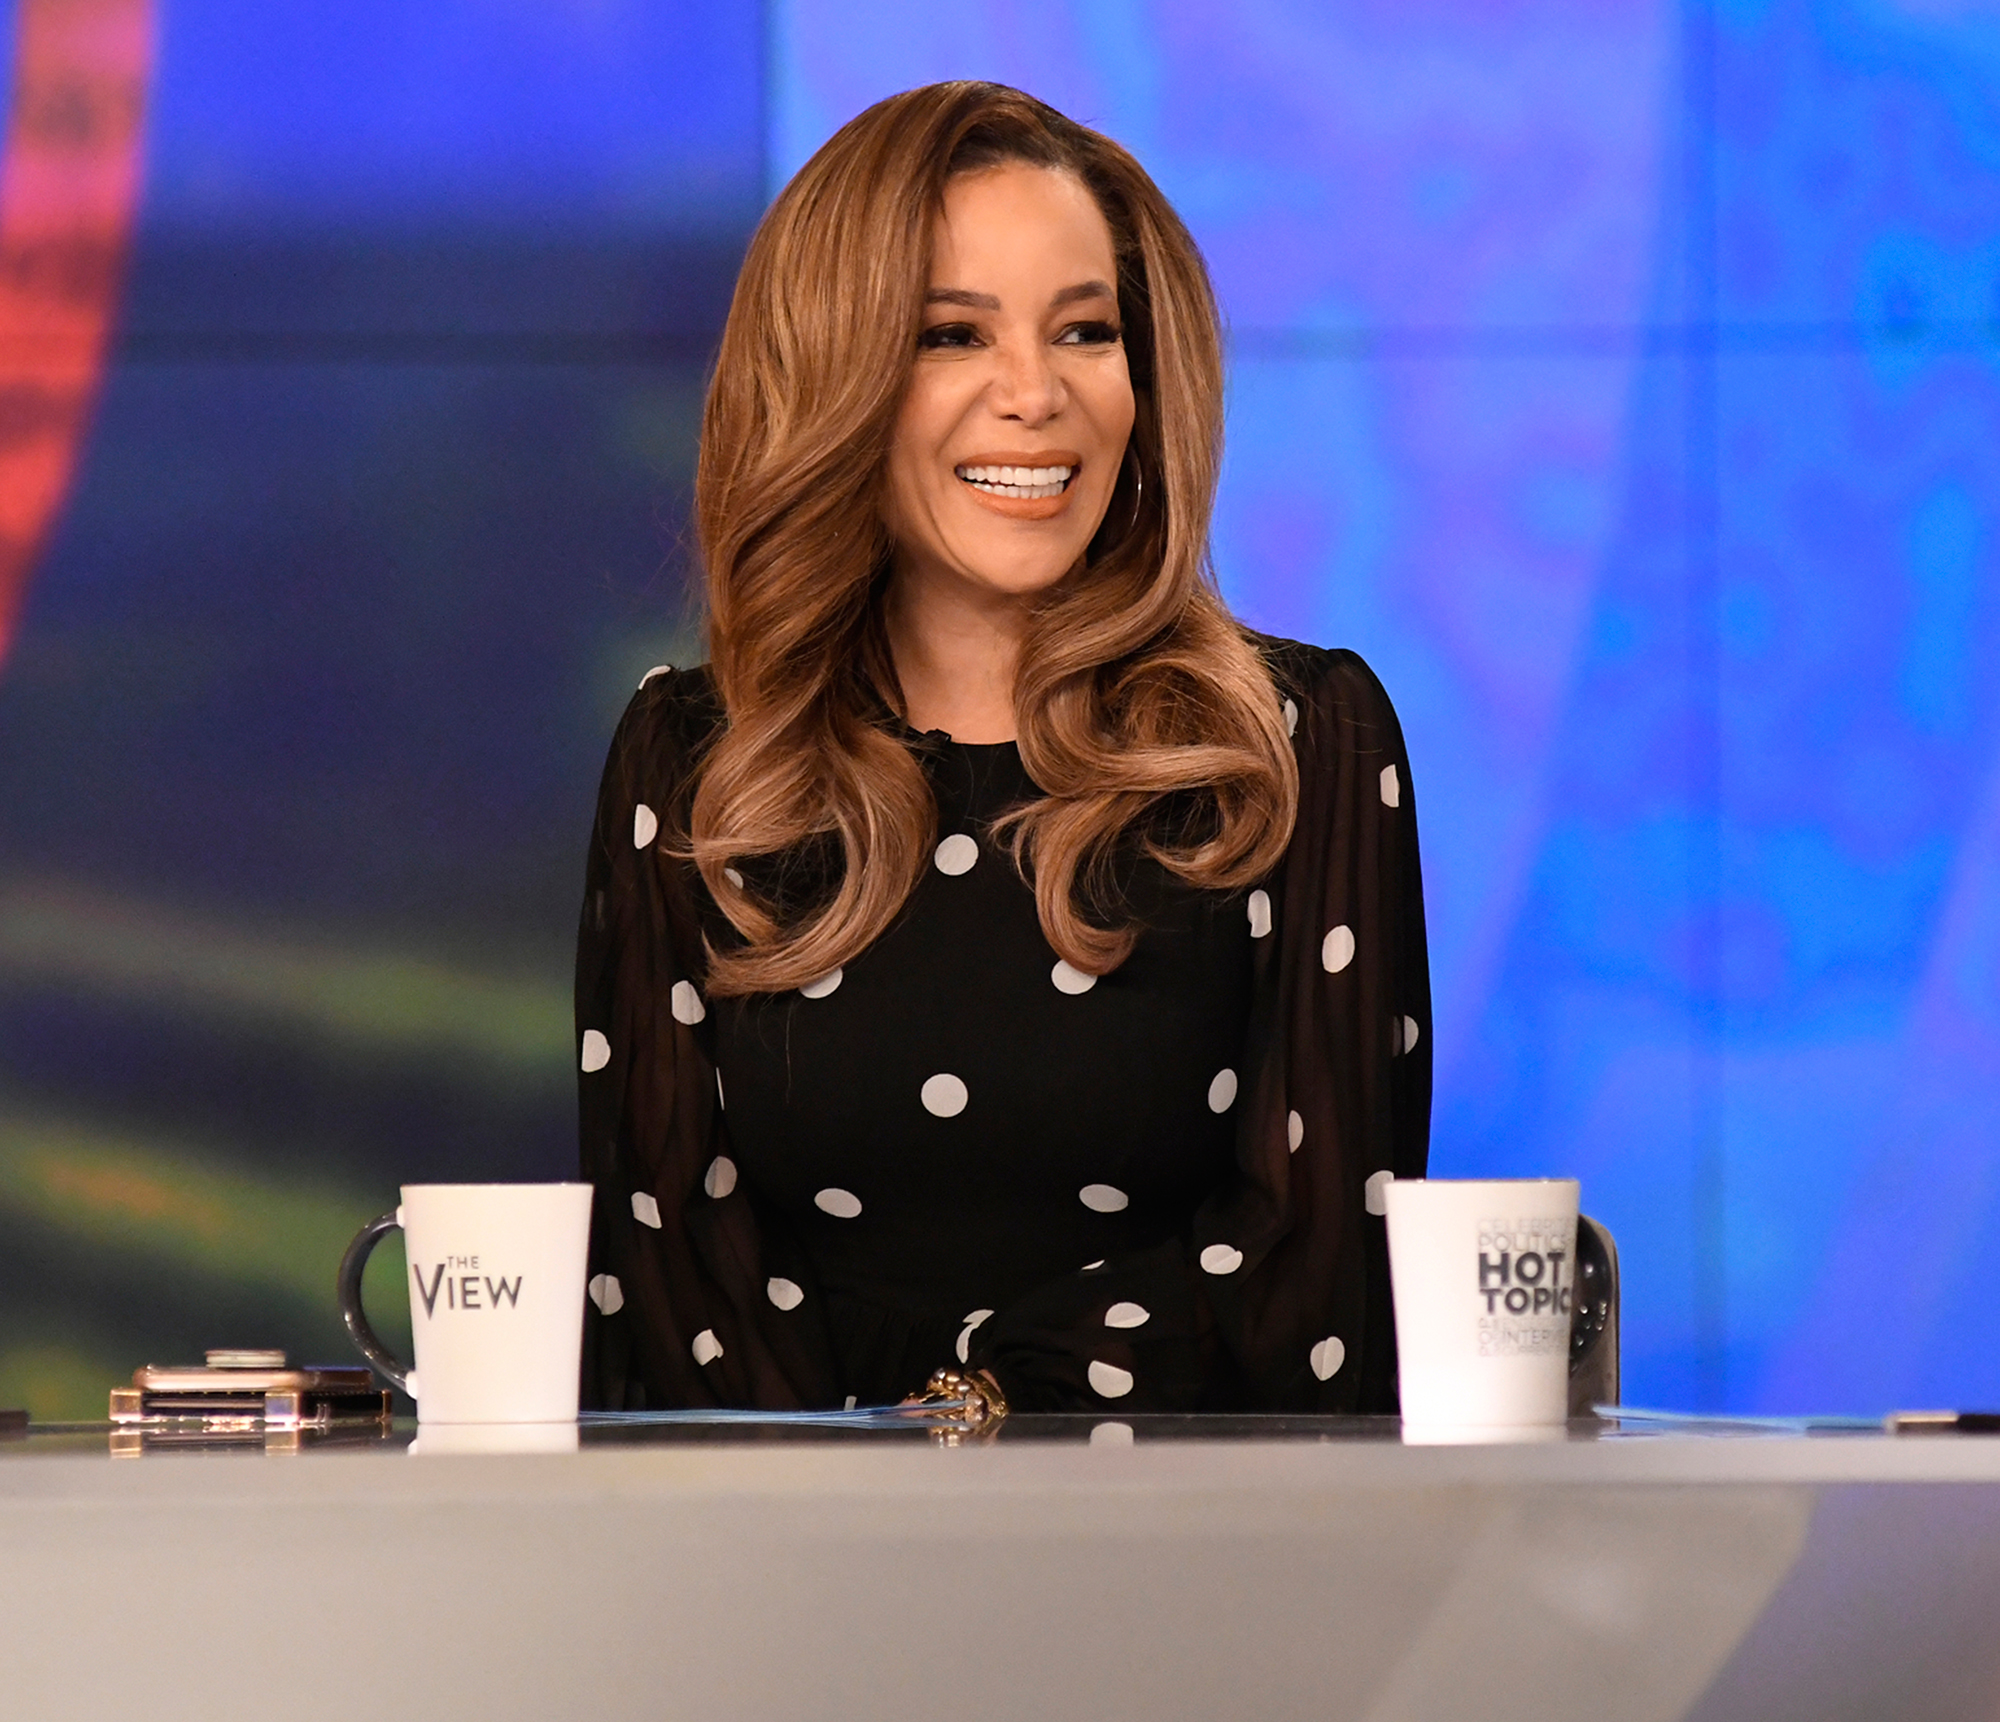 Every 'The View' Cohost Since 1997 Premiere: Joy Behar, Barbara Walters, Whoopi Goldberg and More - The lawyer joined the series in 2016.